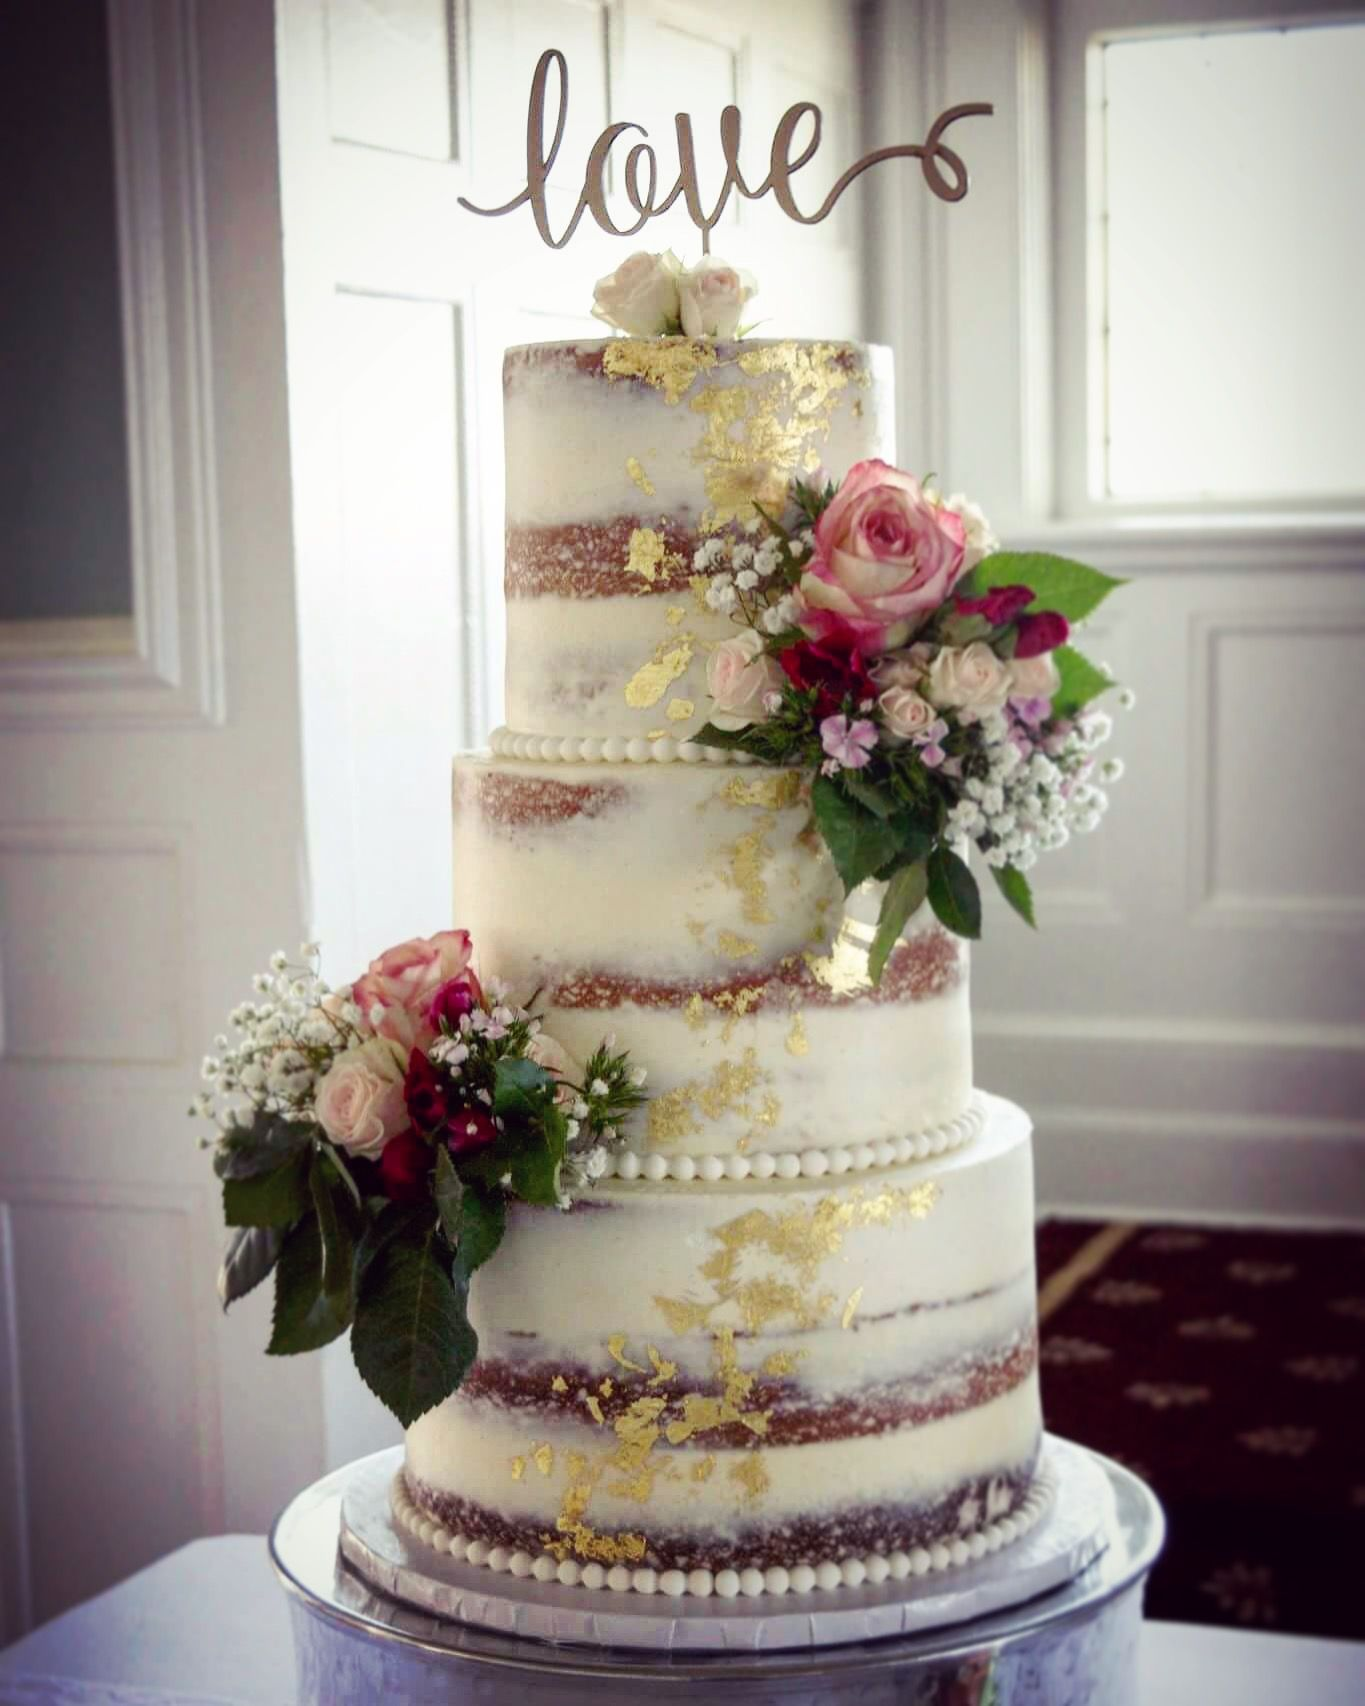 Vintage Naked Cake With Gold Foil Accents Pearls Fresh Flowers For A 1930s Themed